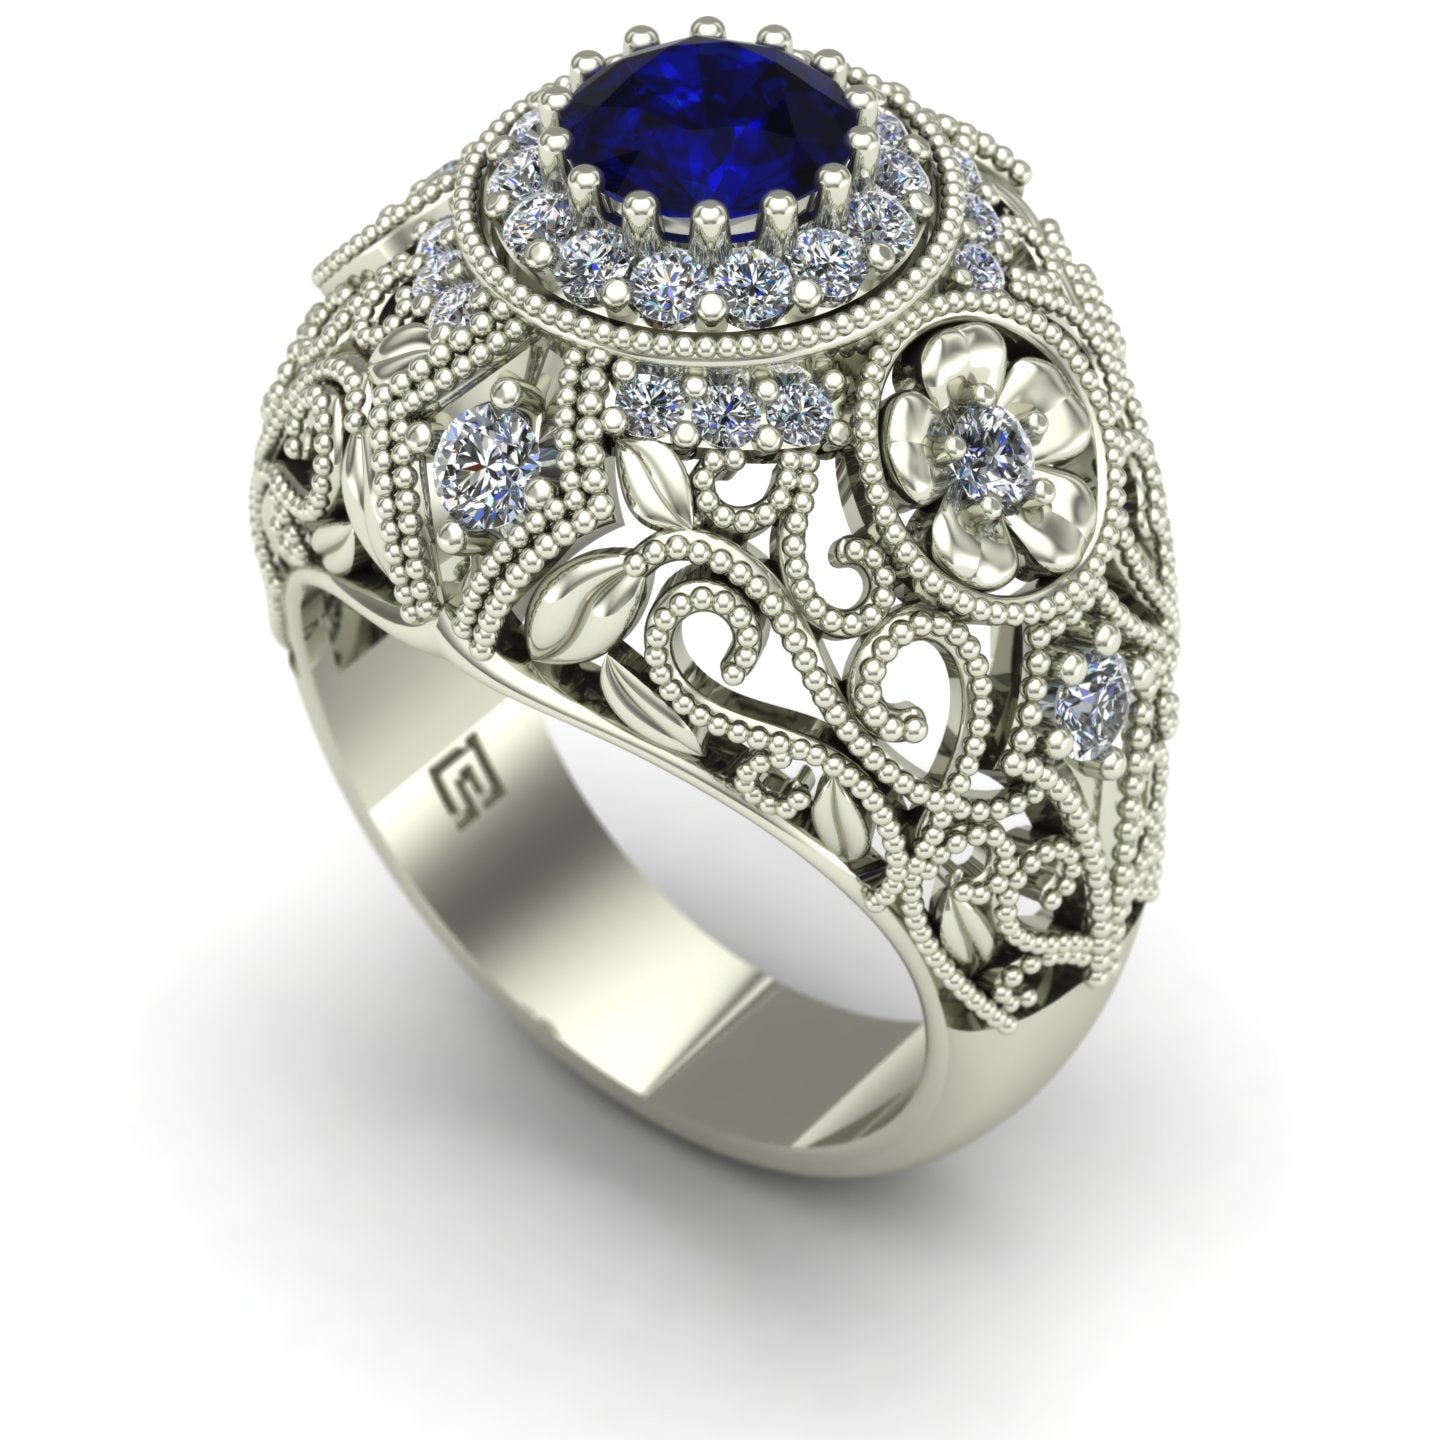 Blue sapphire and diamond large dome cocktail ring in 14k white gold